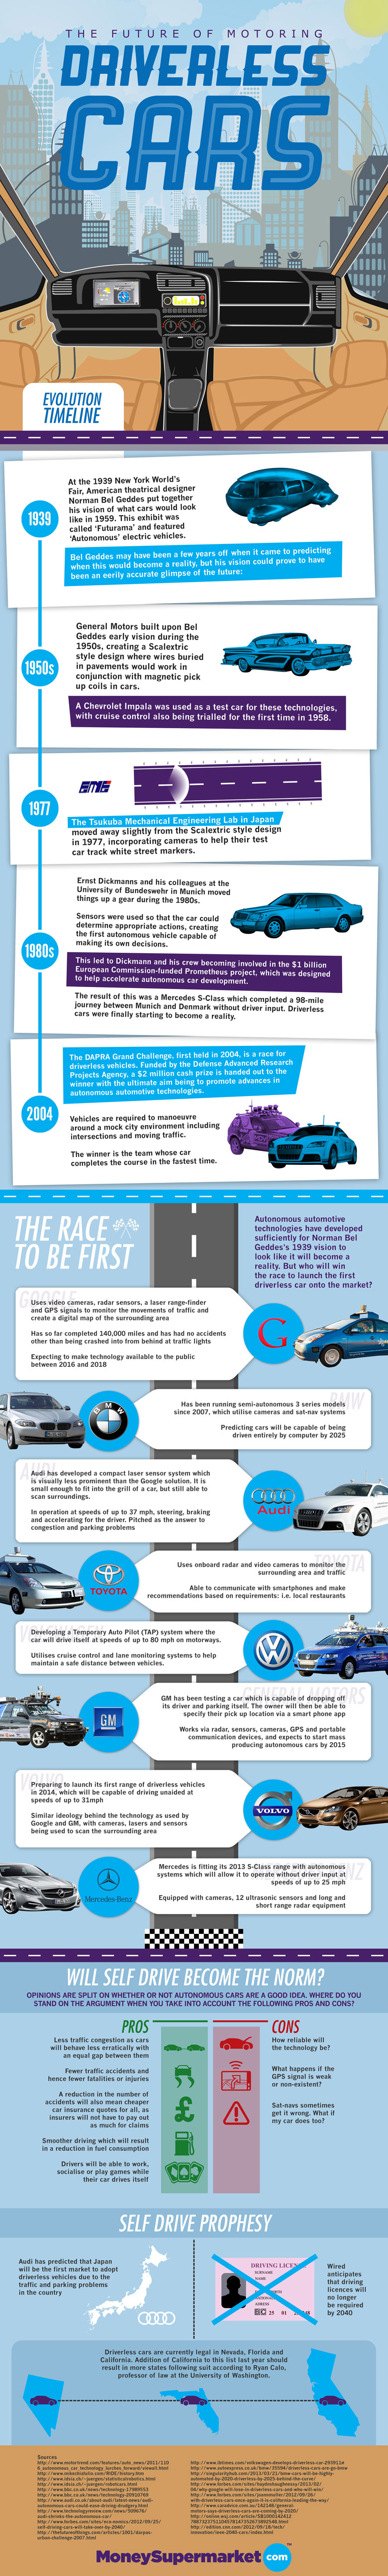 Driverless car infographic